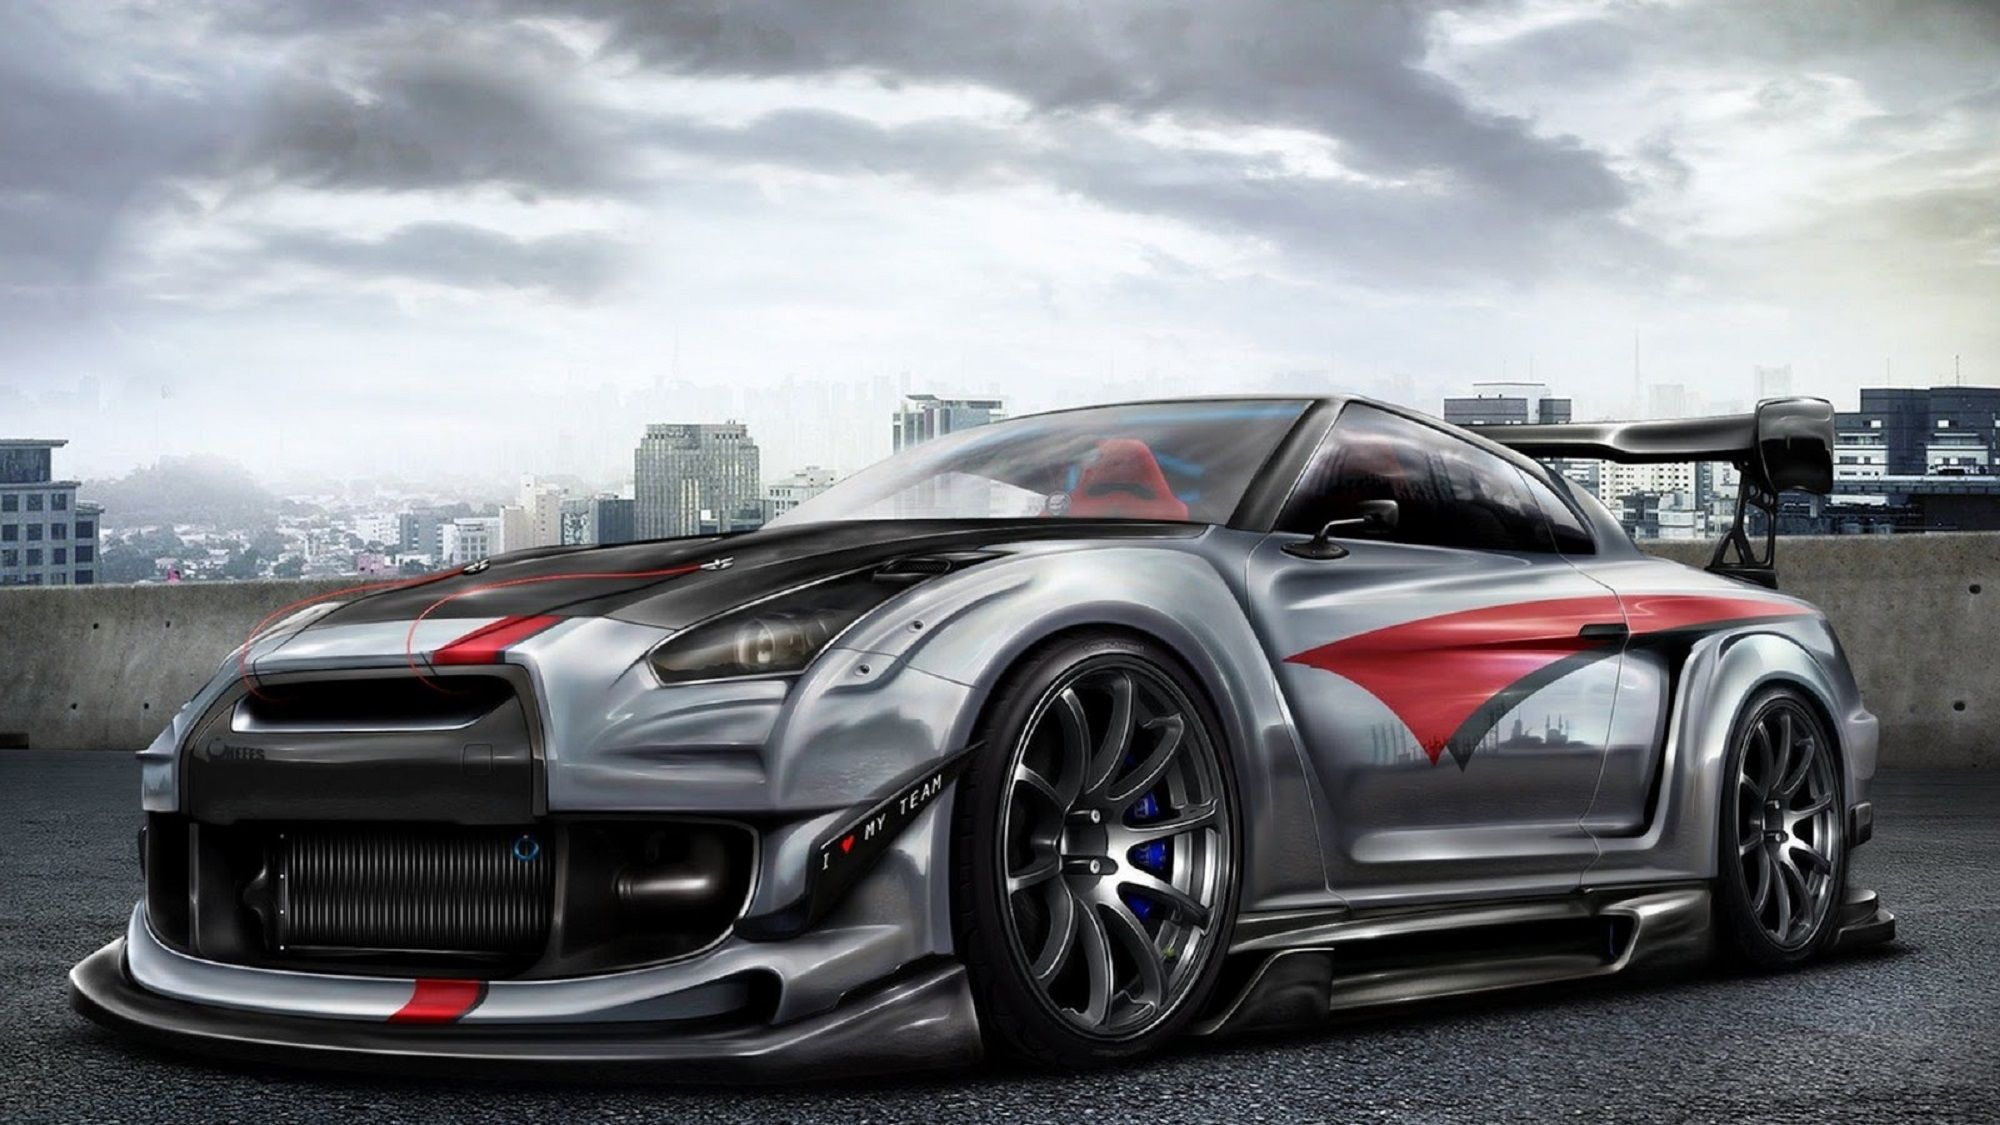 We are uploading best 2014 nissan gtr car five hd wallpaper gallery here with sporty design related auto story